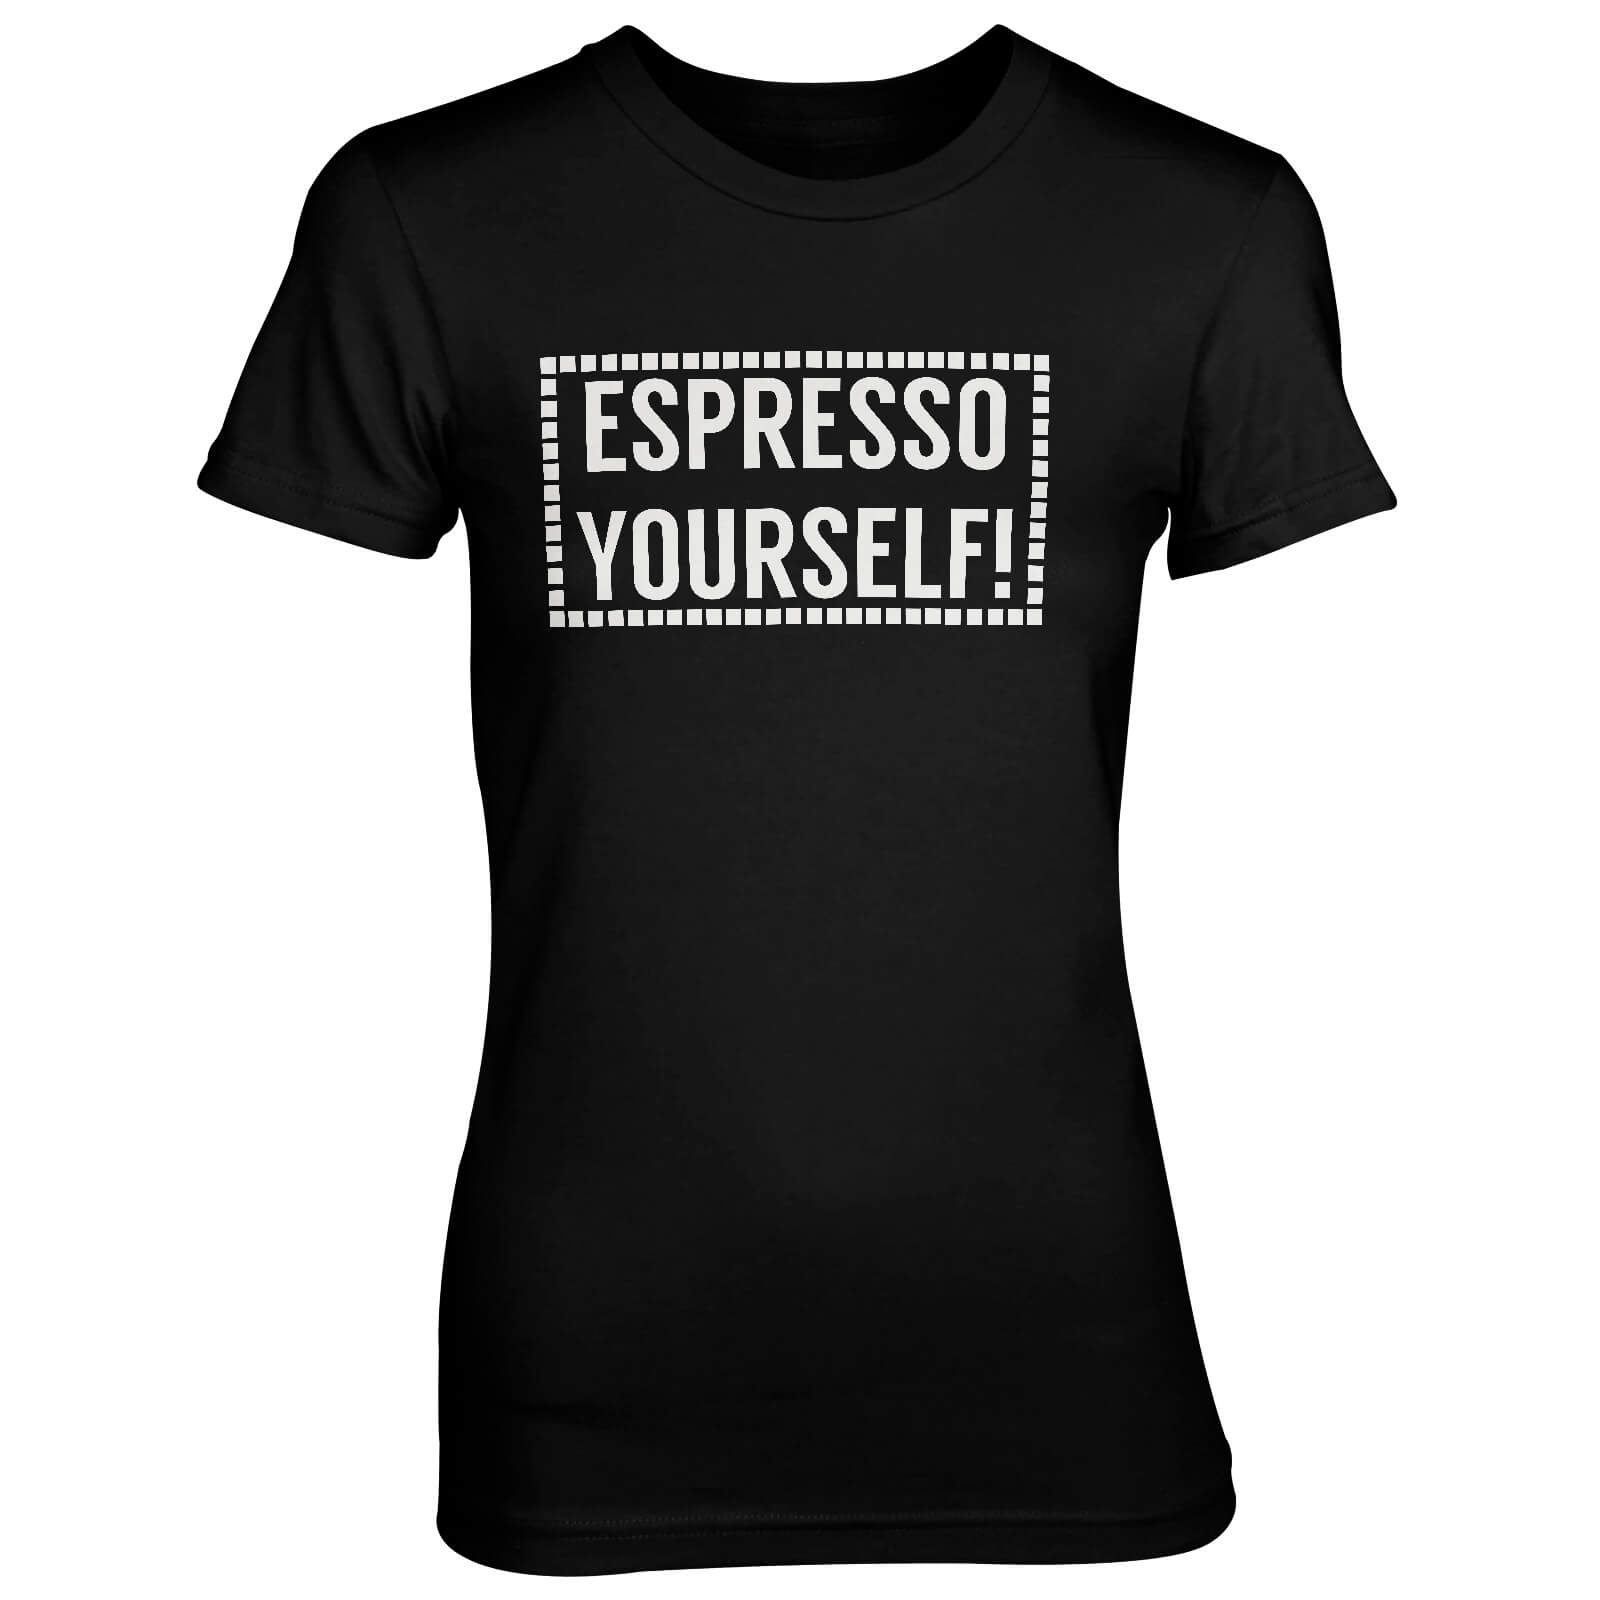 Espresso Yourself! Women